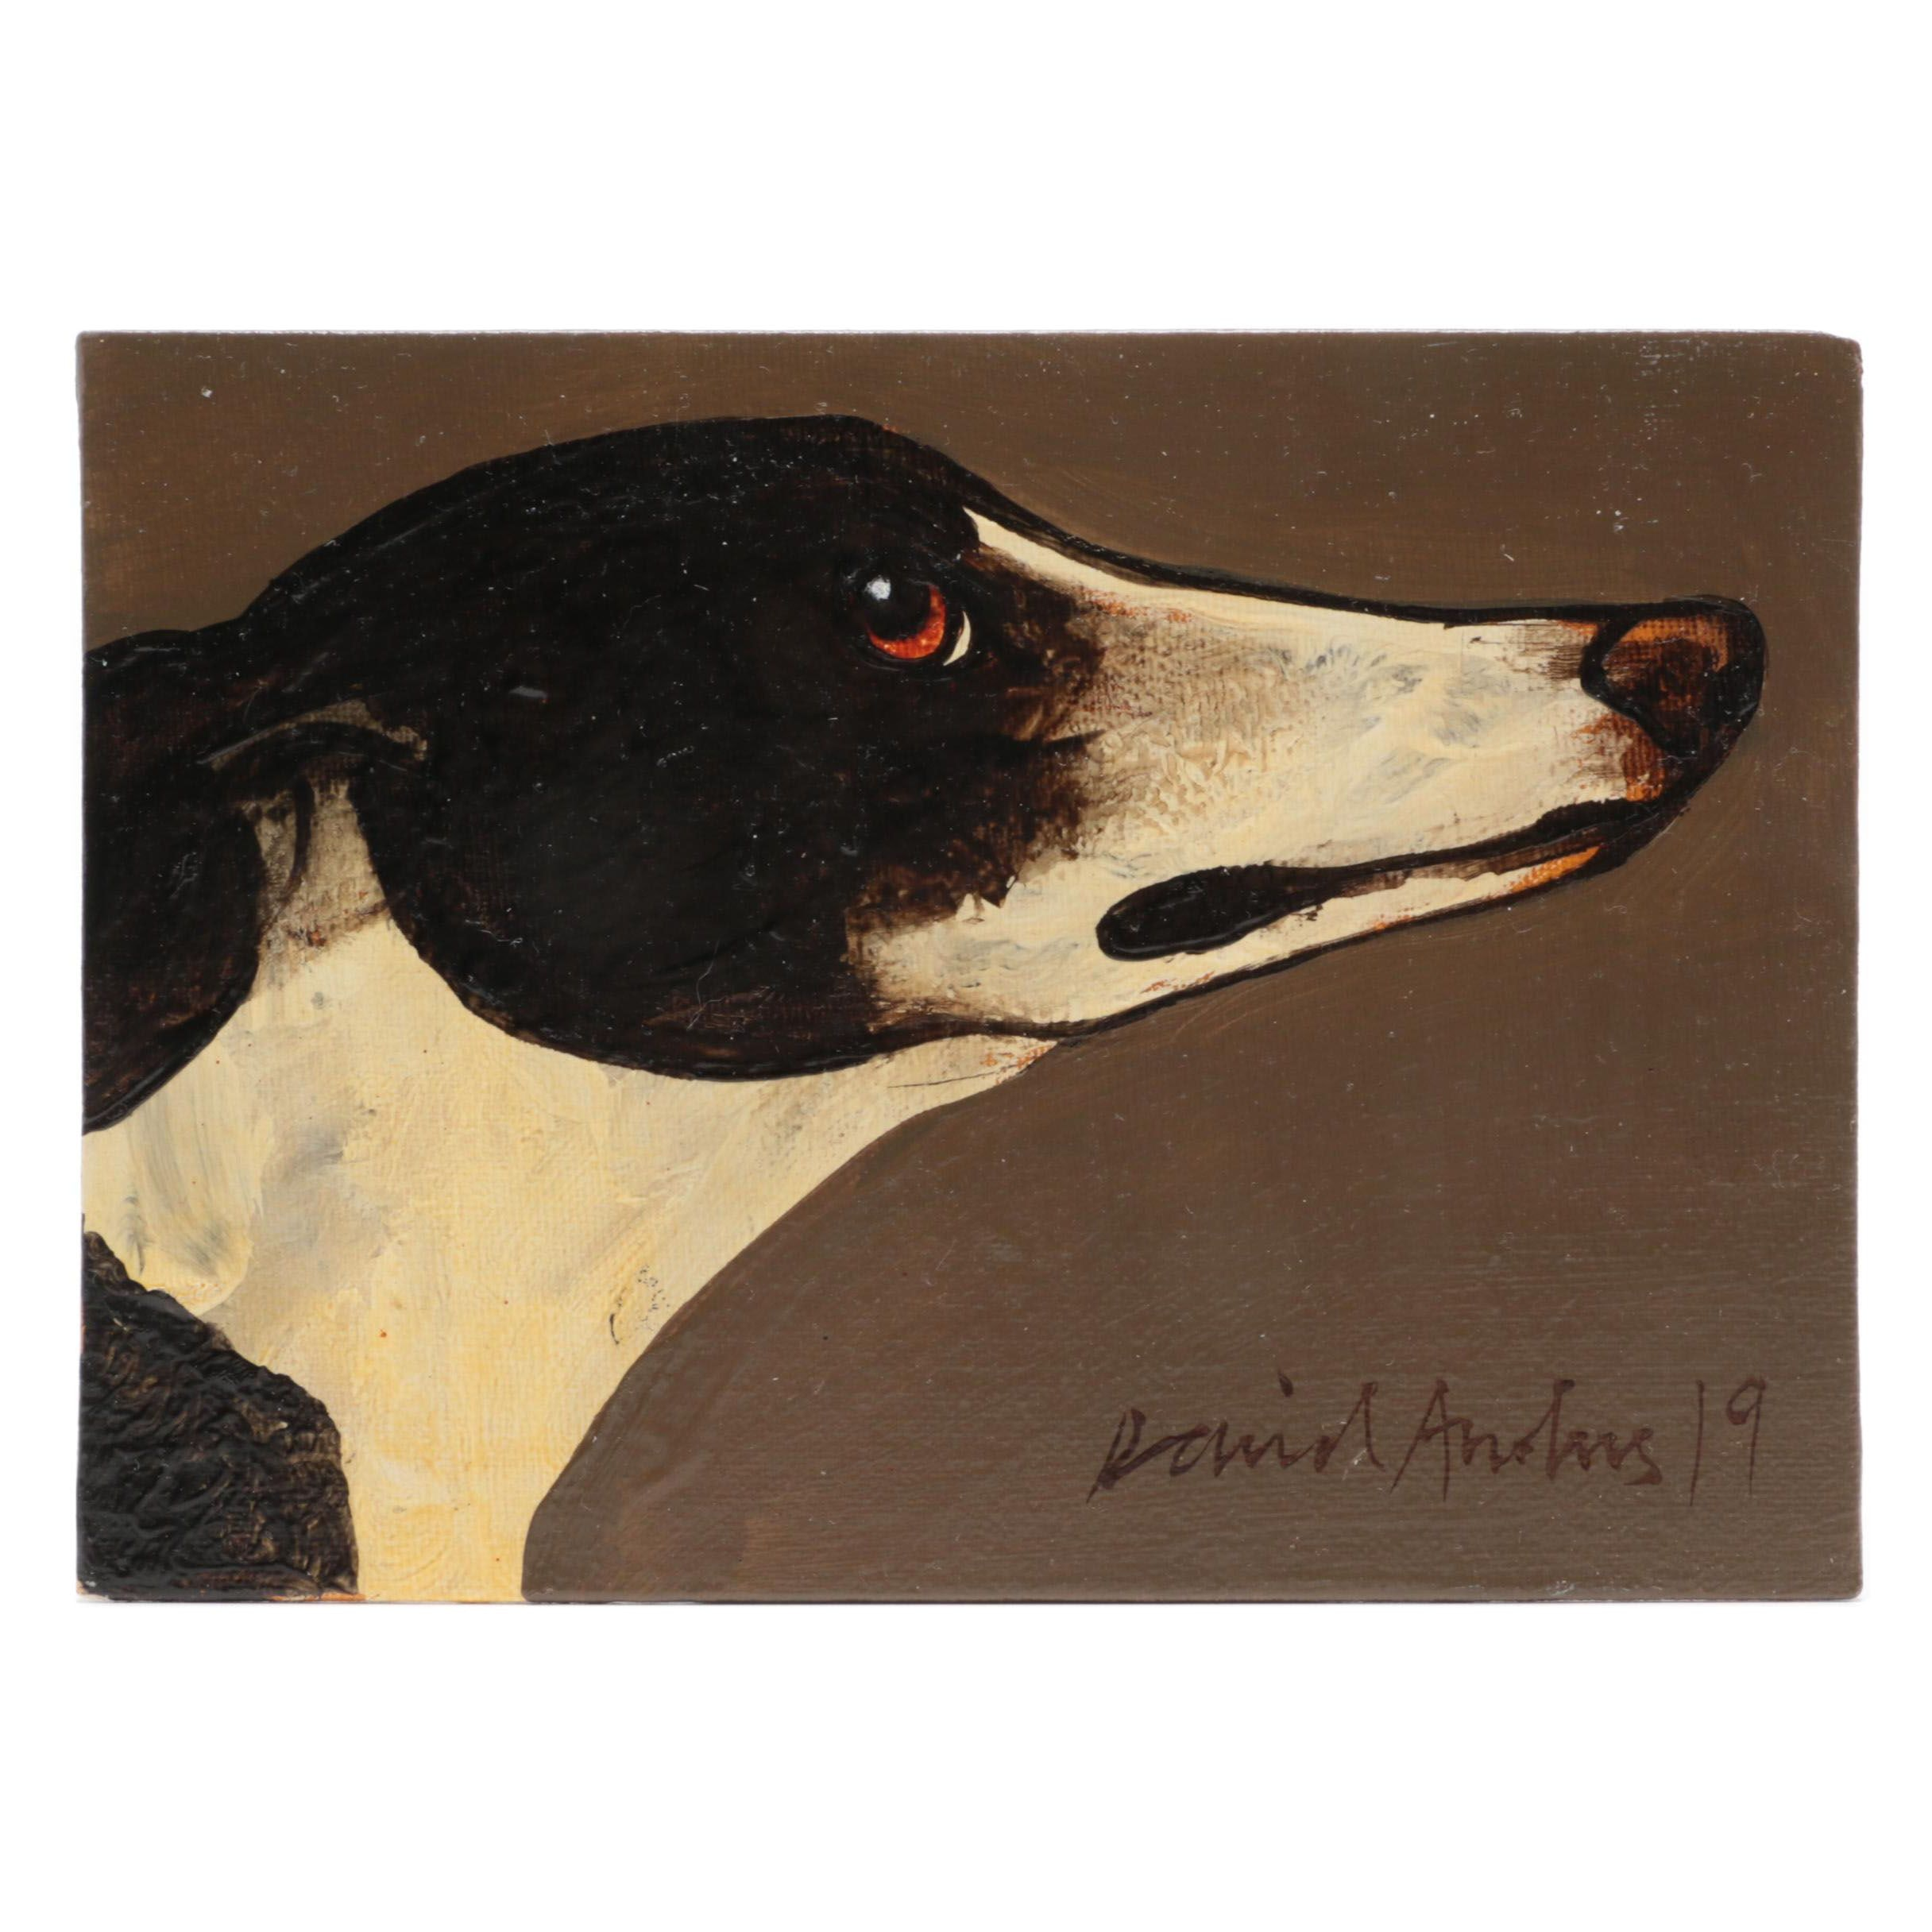 David Andrews Oil Painting of Dog